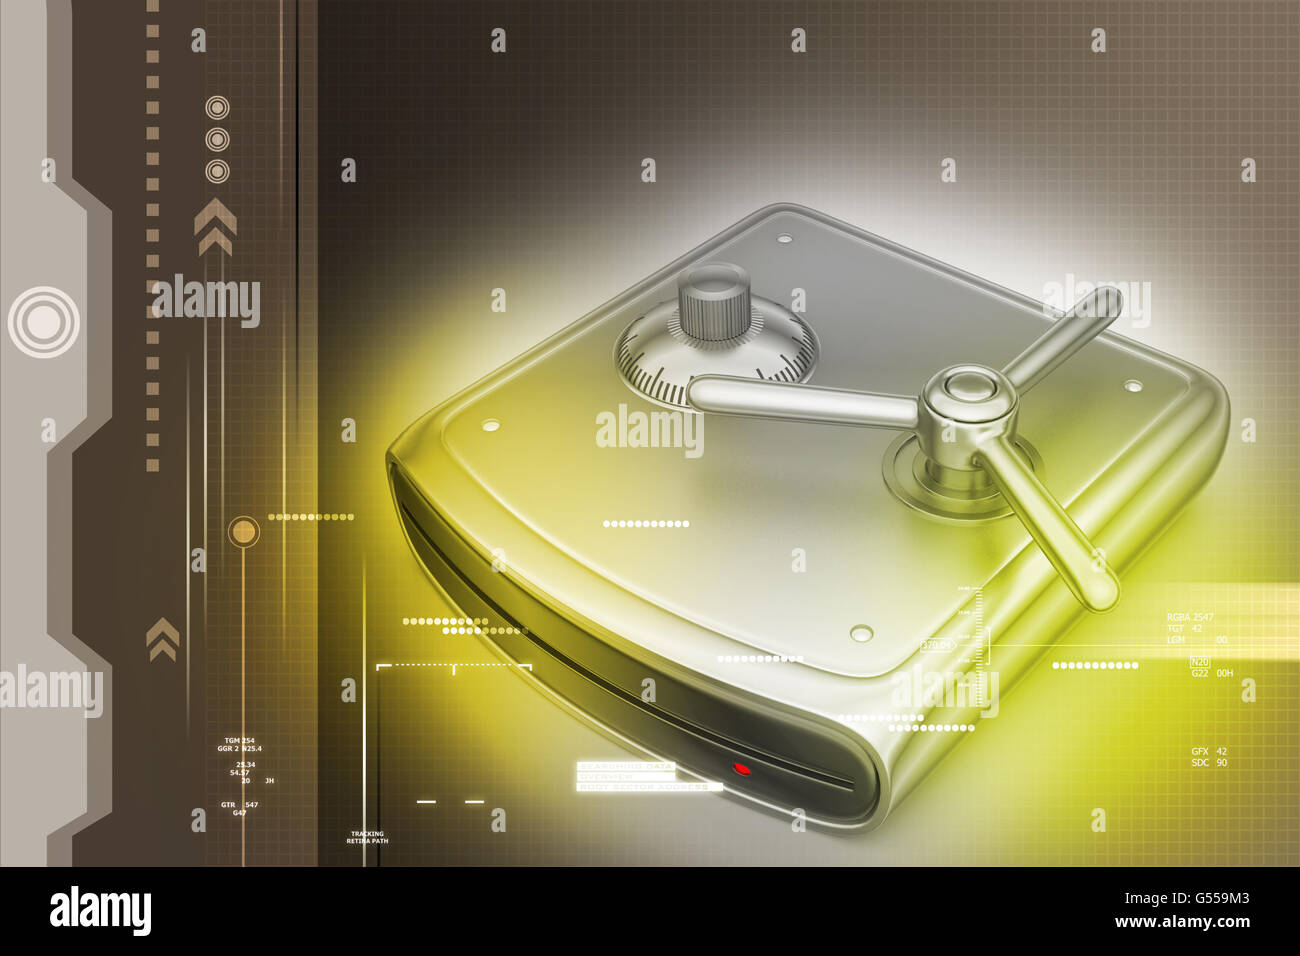 Secure Hard drive - Stock Image